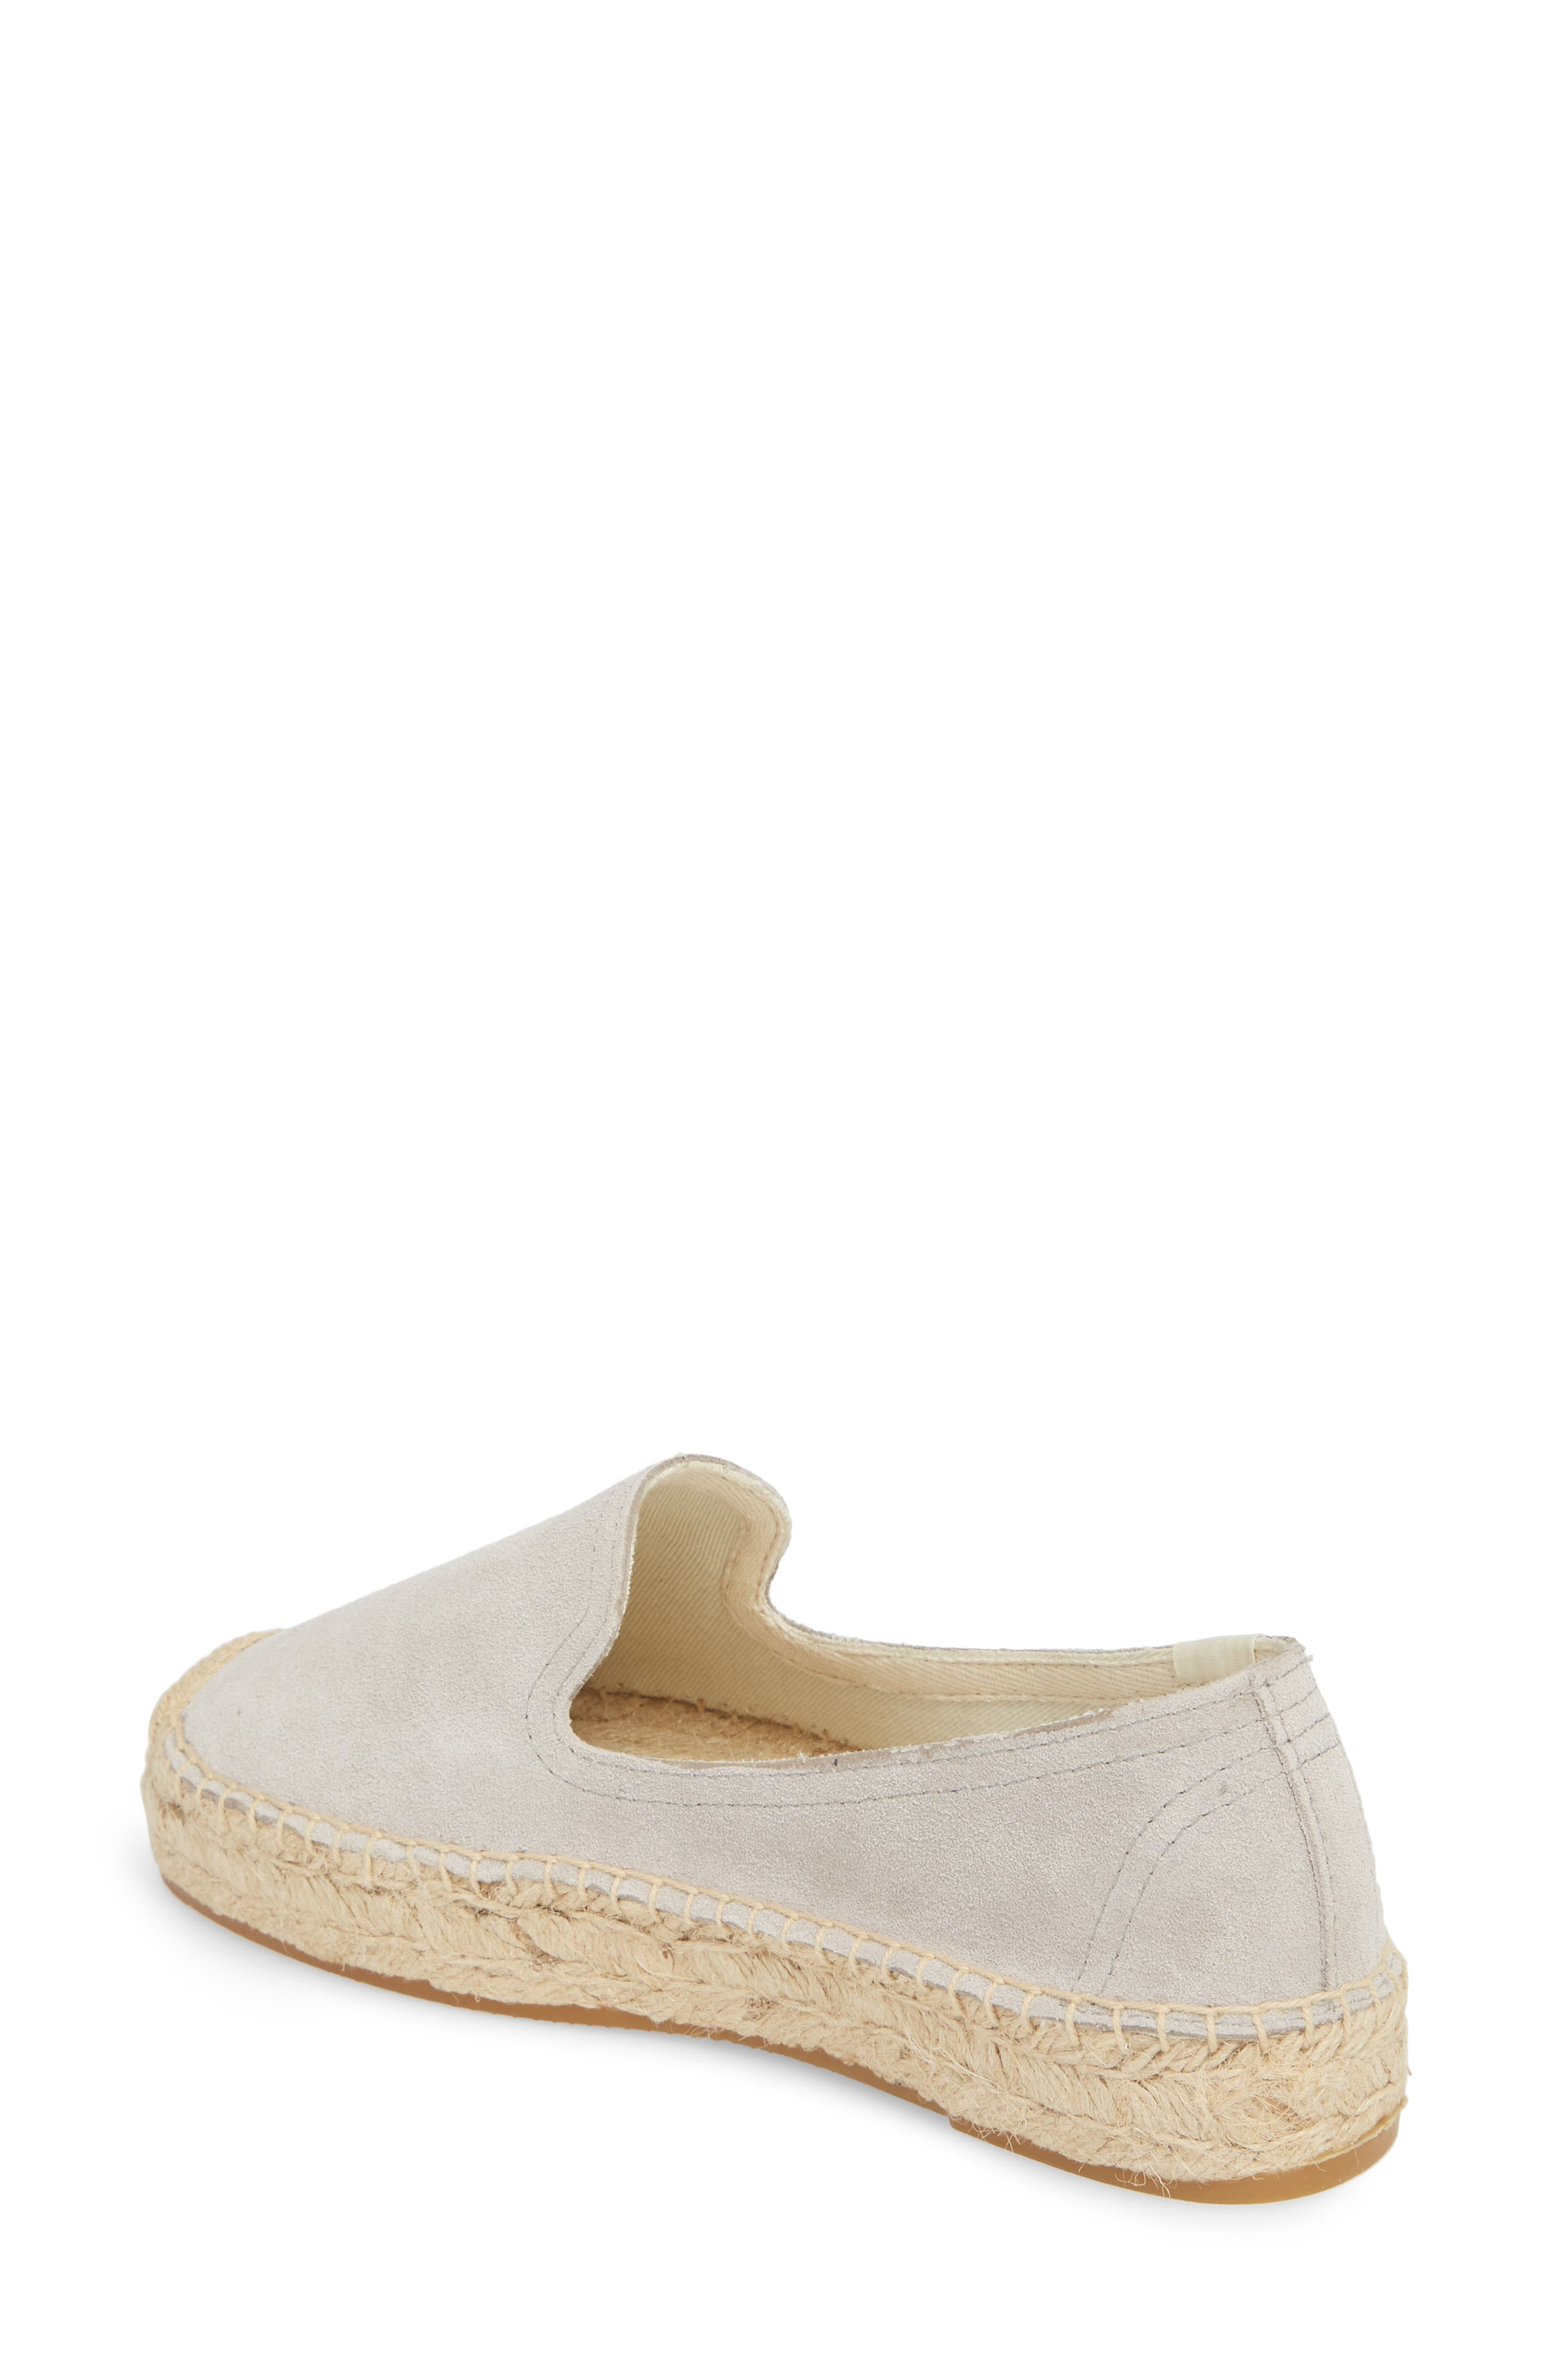 Espadrille Loafer,                             Alternate thumbnail 2, color,                             STONE